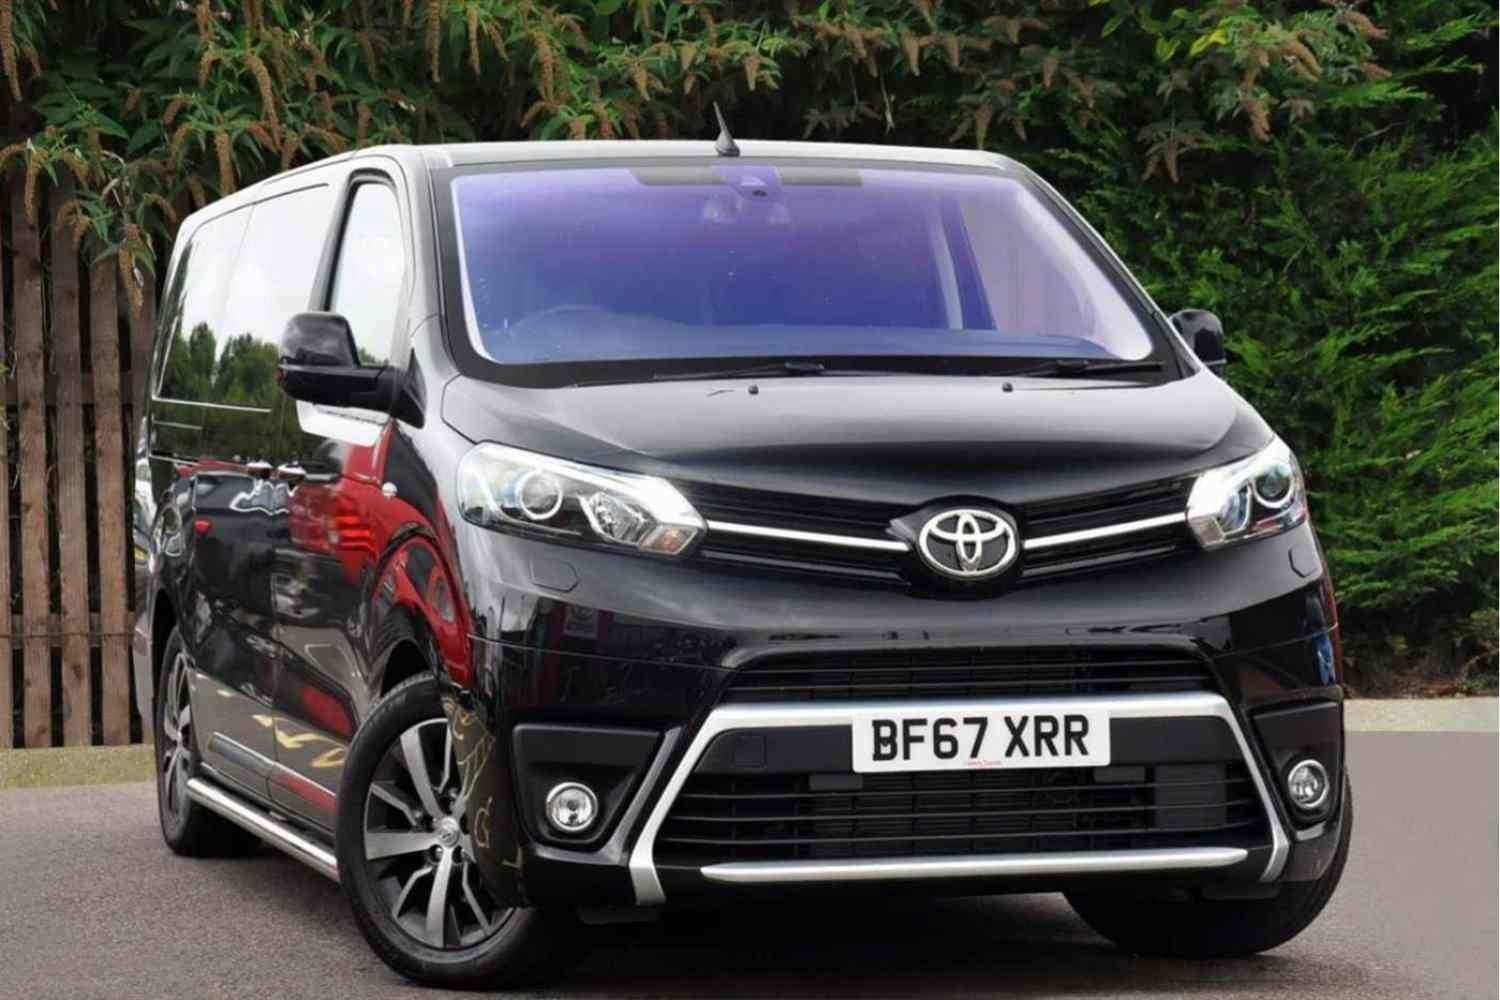 82 All New Toyota Avanza 2020 Style with Toyota Avanza 2020